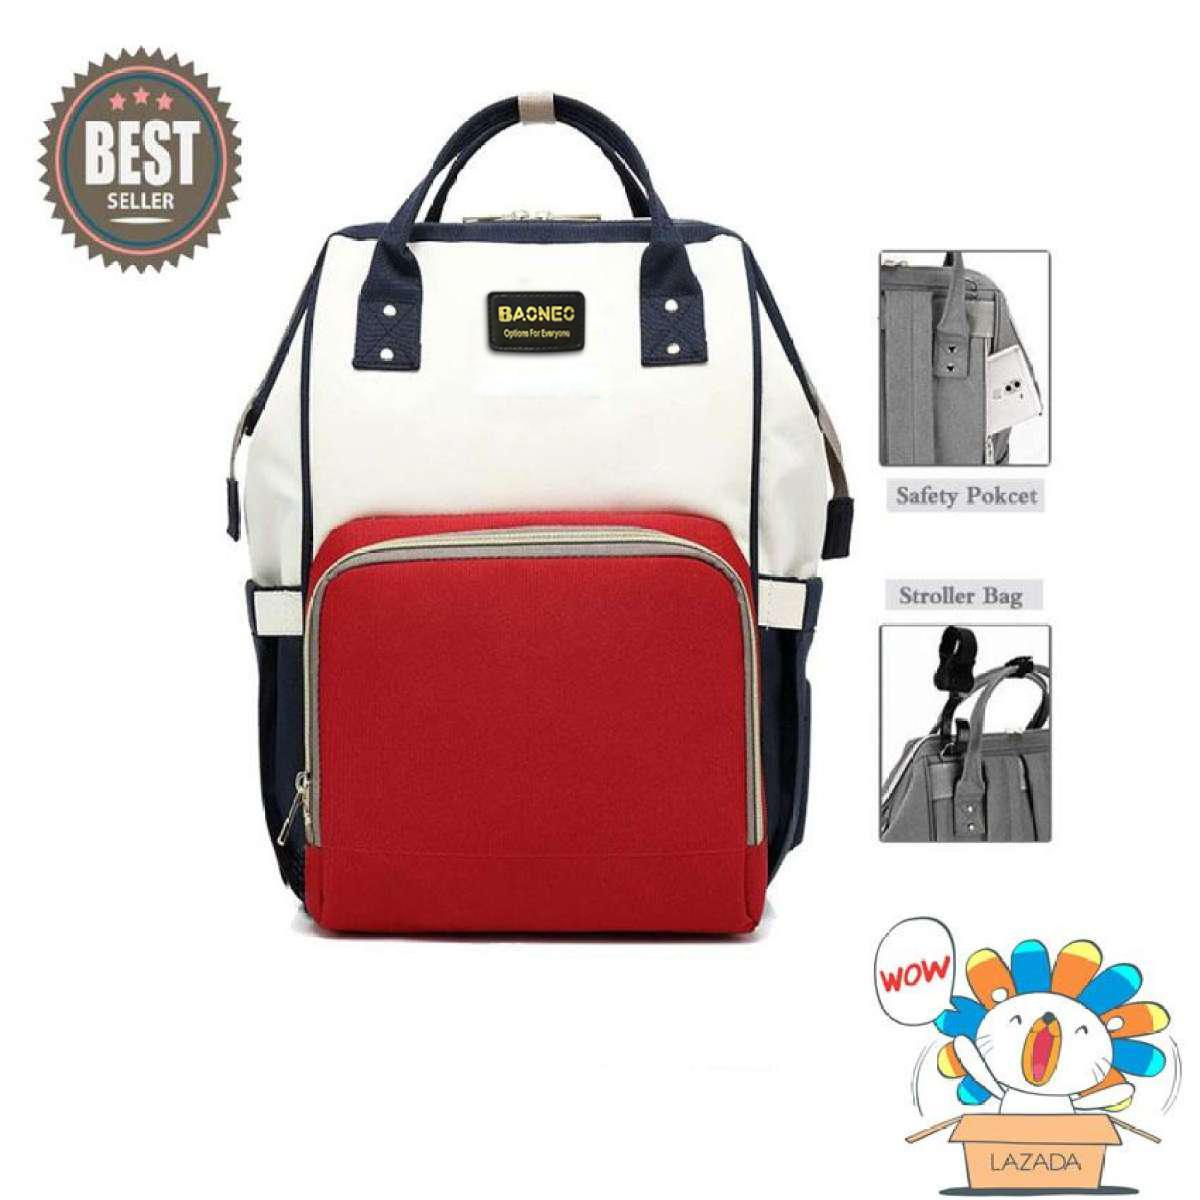 a78f99abe8 Fashion Mummy Maternity Nappy Bag Brand Large Capacity Baby Bag Travel  Backpack Desinger Nursing Bag for